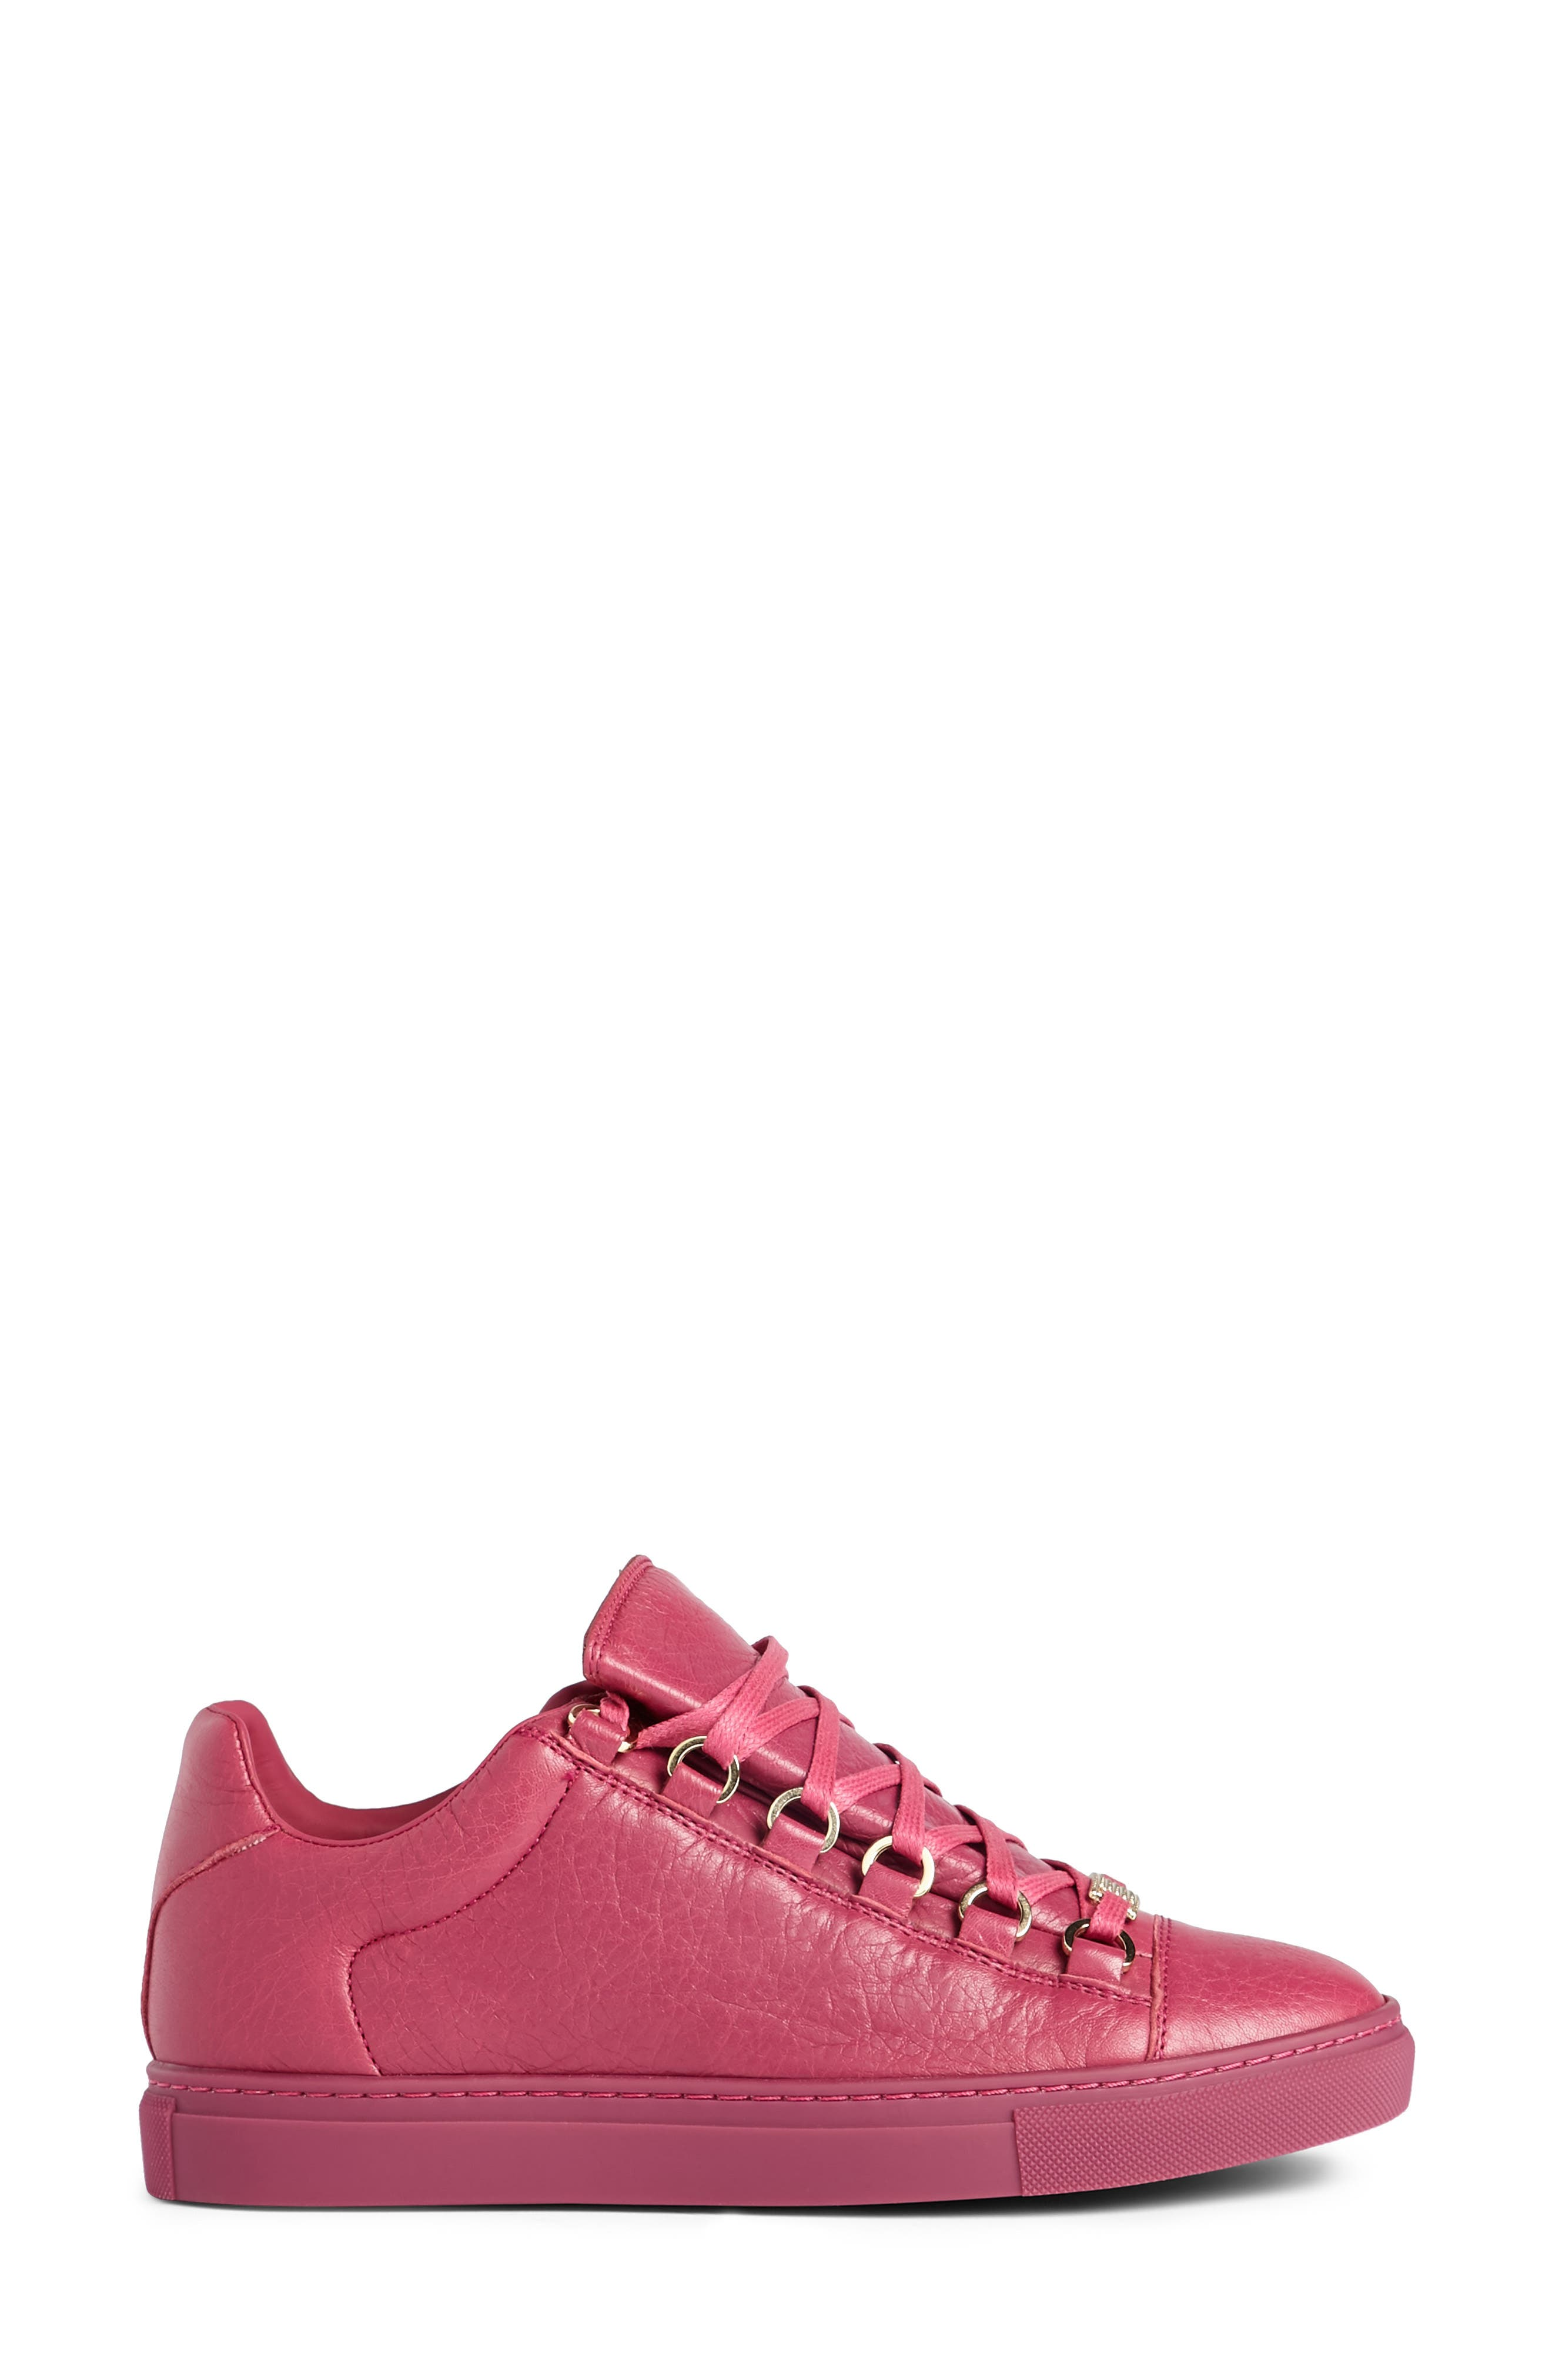 Low Top Sneaker,                             Alternate thumbnail 27, color,